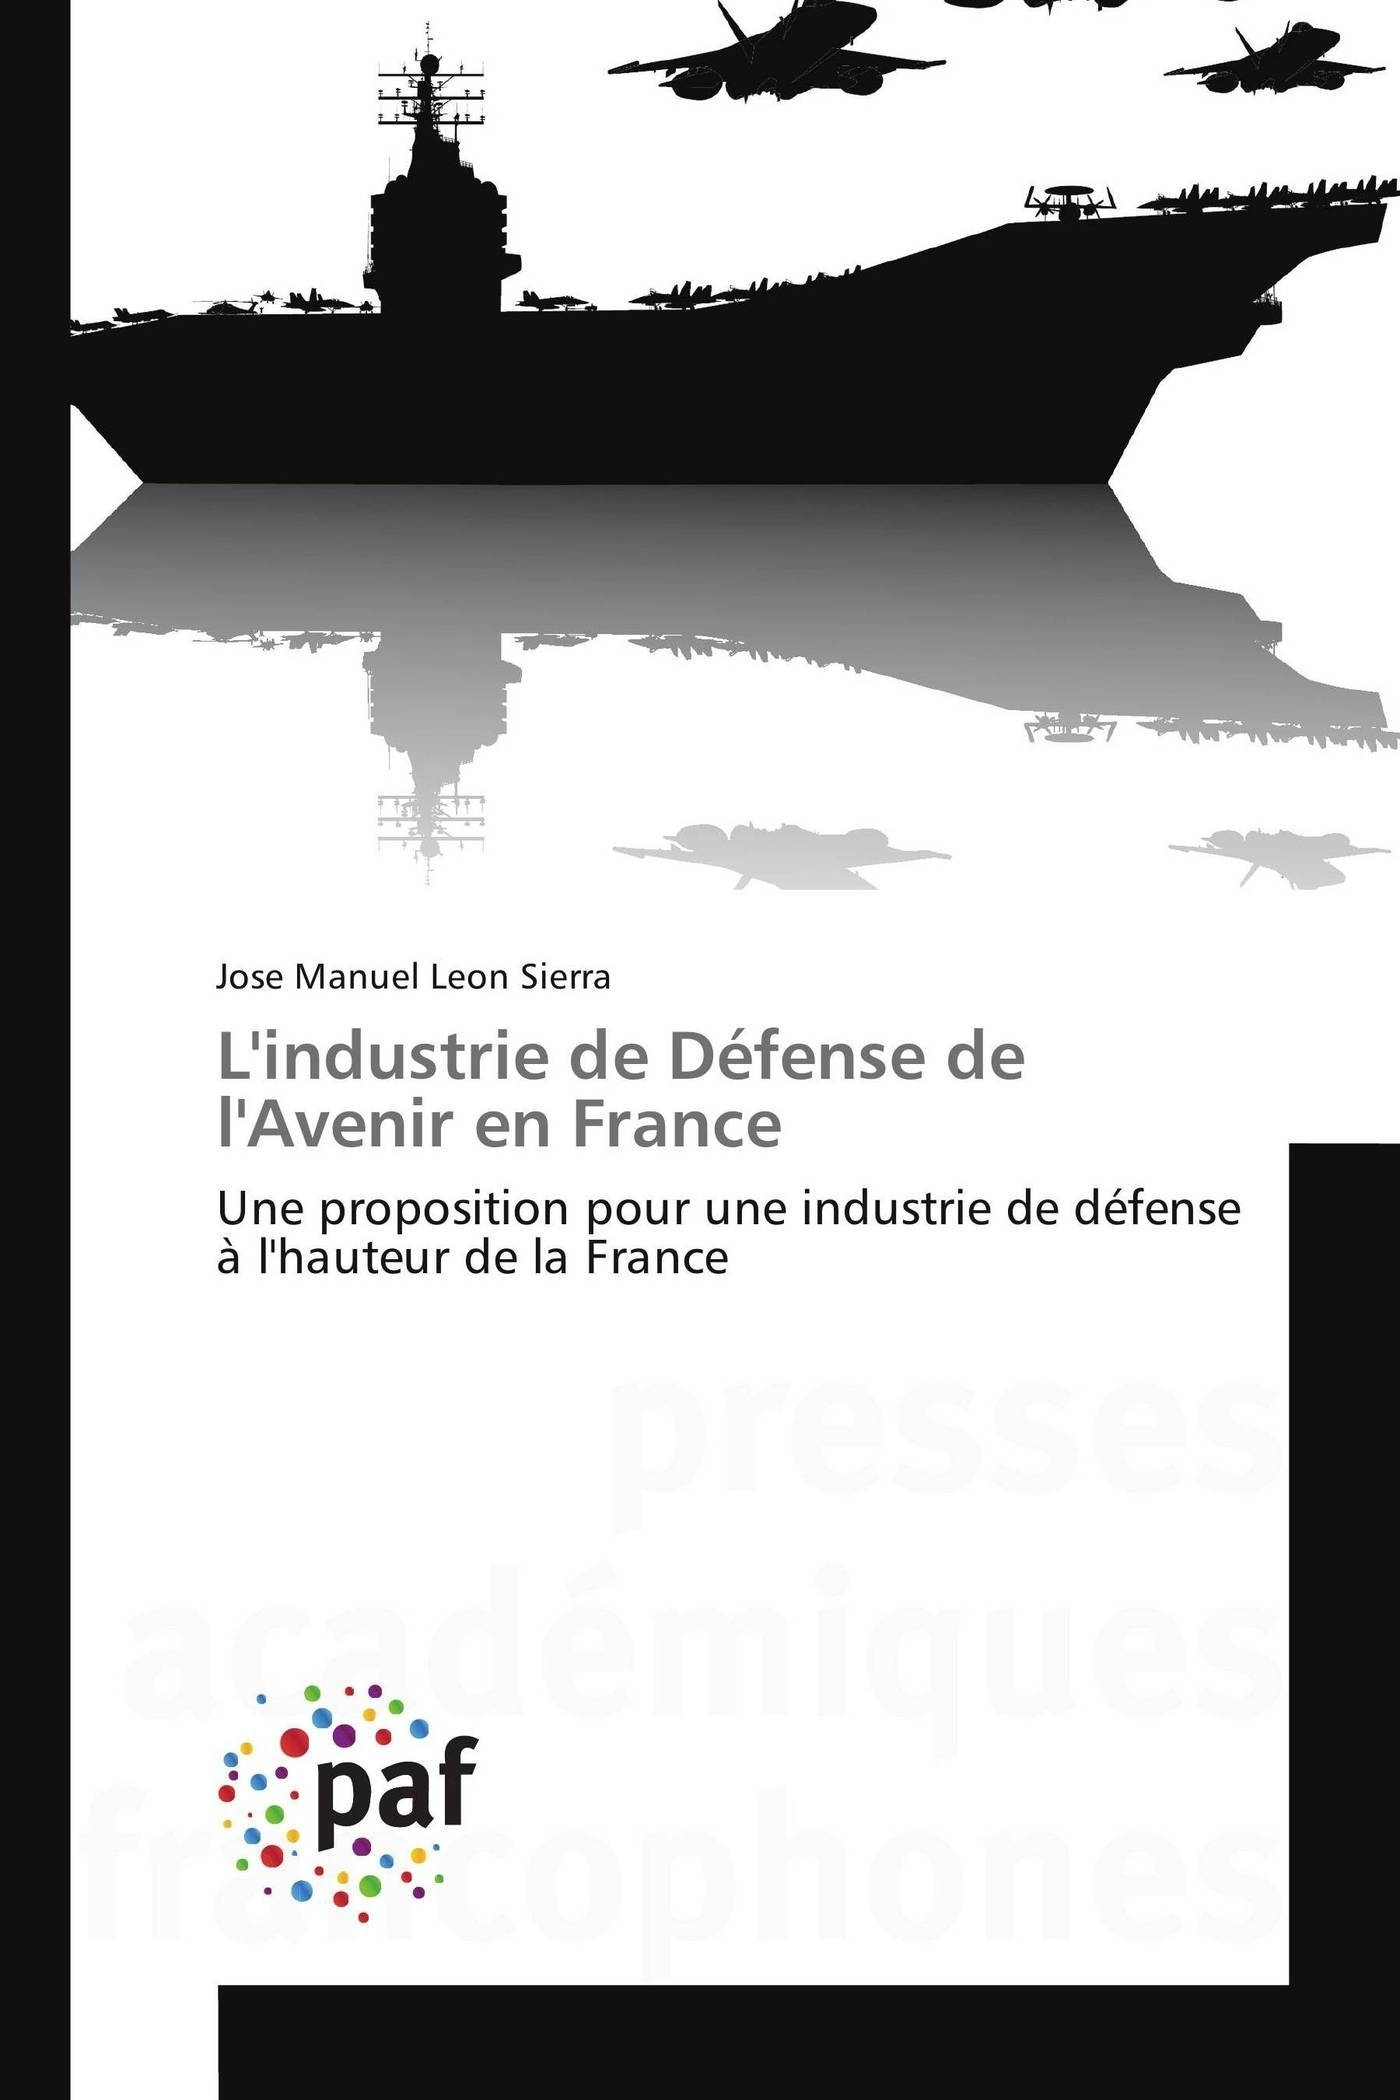 L'INDUSTRIE DE DEFENSE DE L'AVENIR EN FRANCE